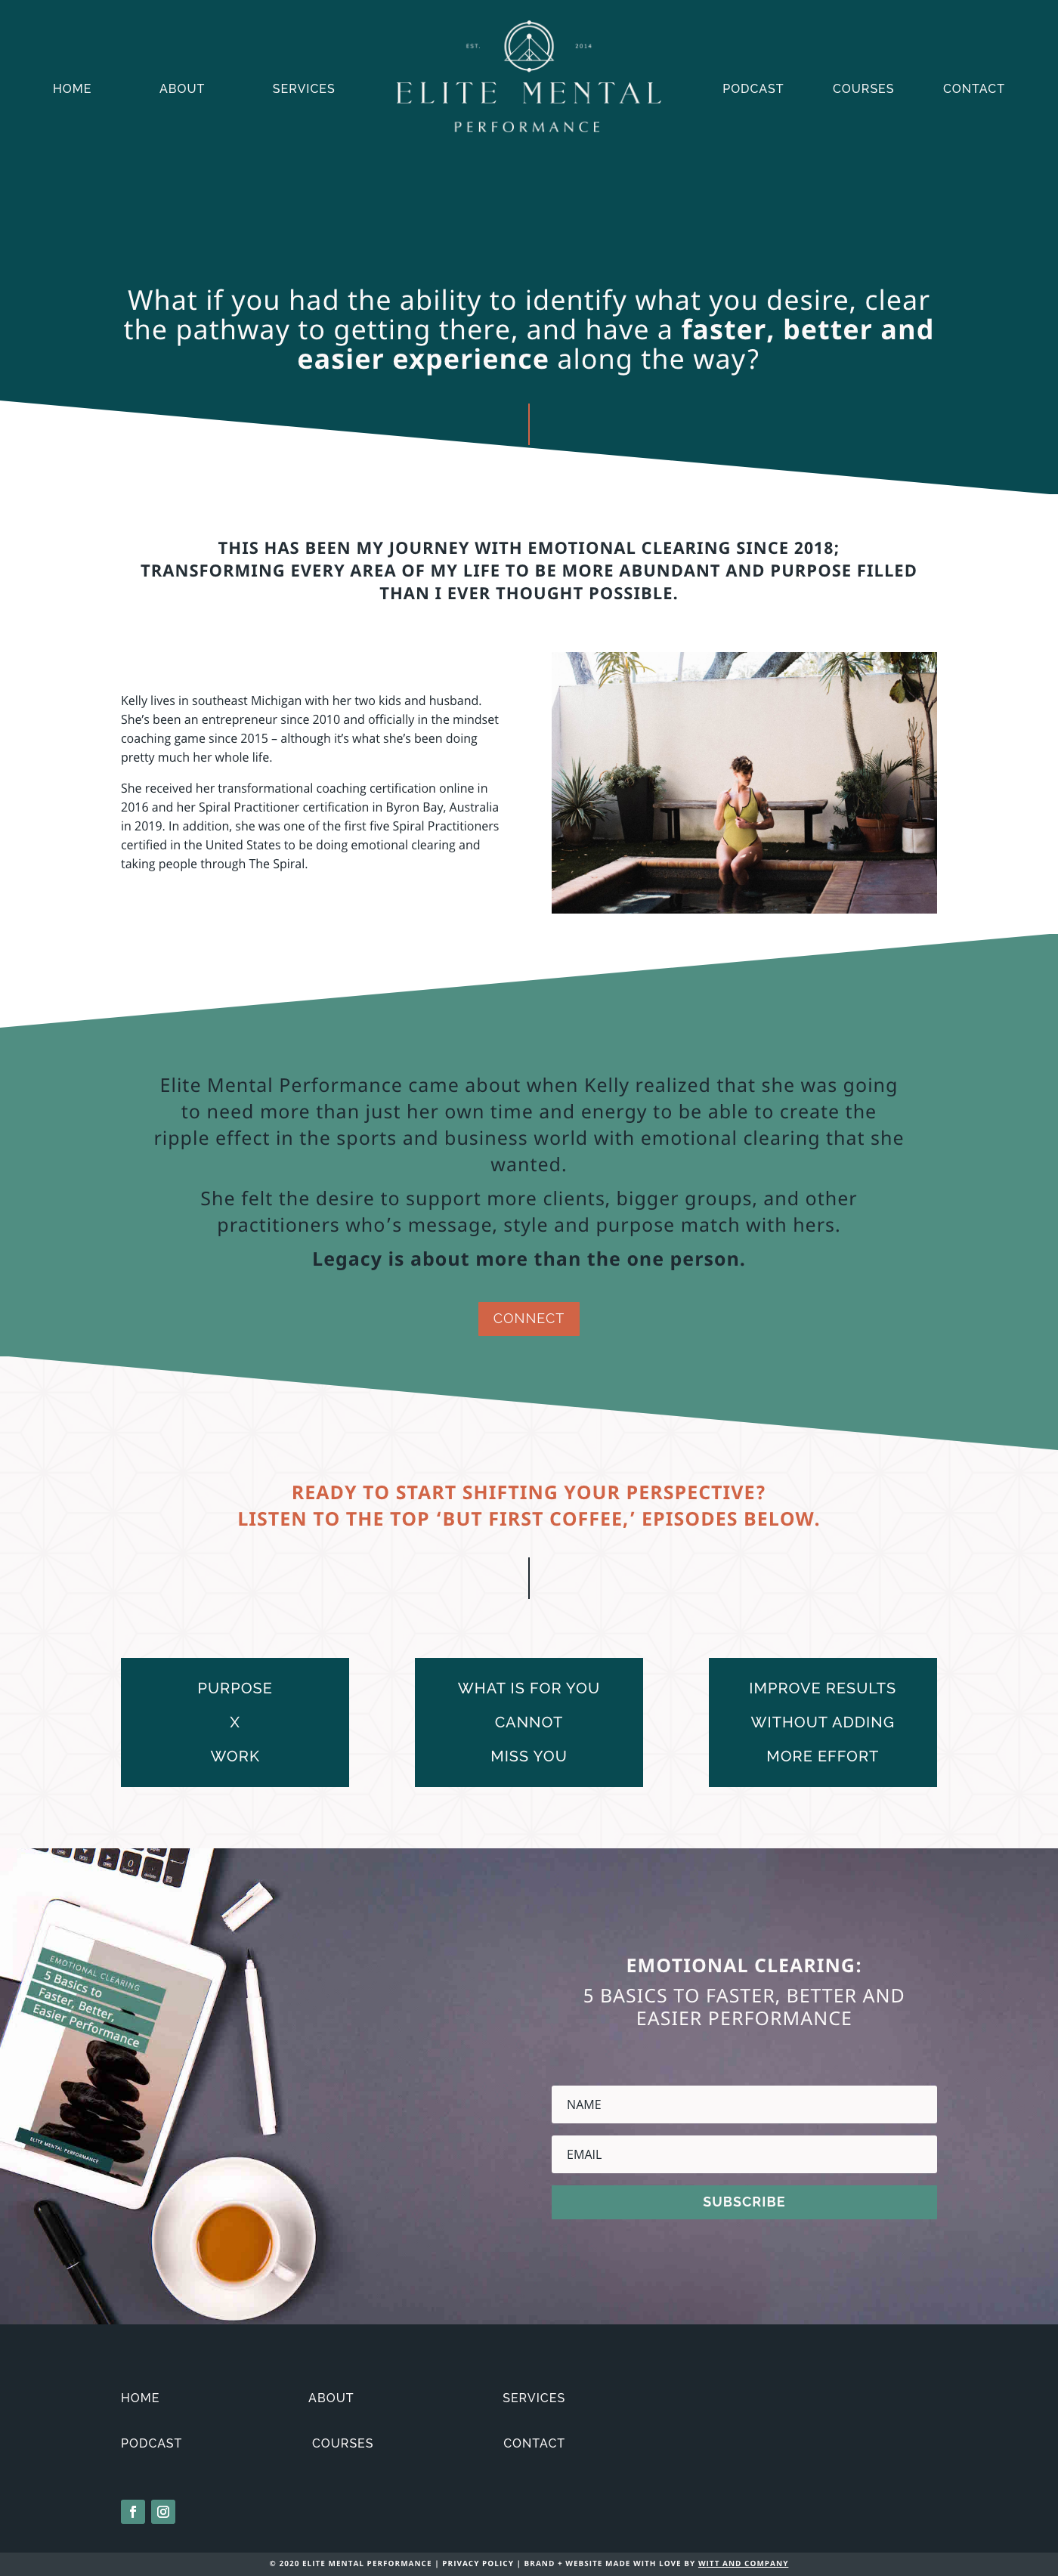 Elite Mental Performance Website About Page with Divi Theme | Witt and Company